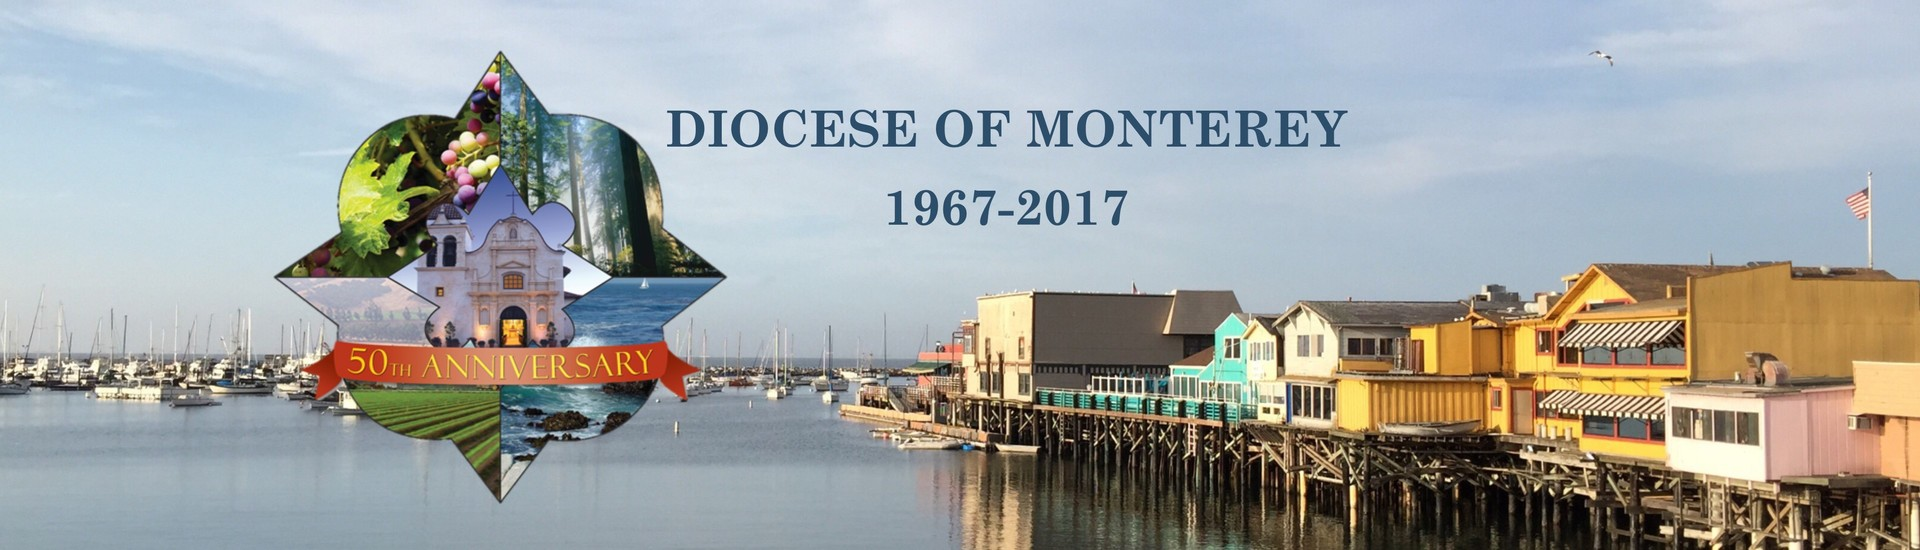 Diocese of monterey ca